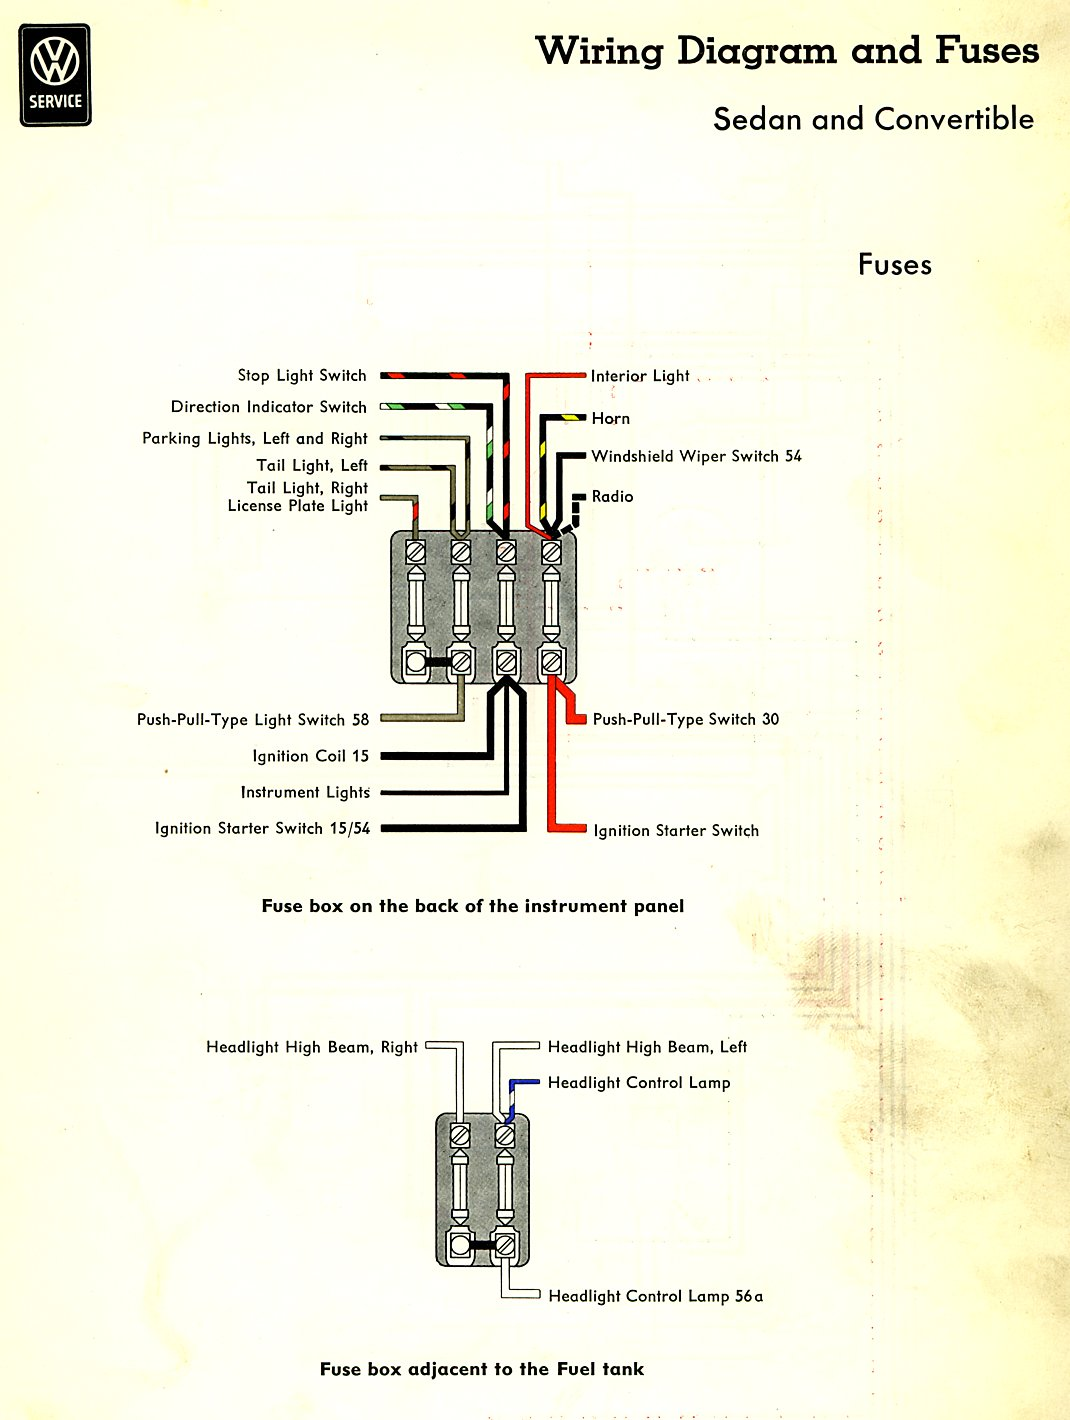 1973 vw bug headlight wiring diagram on wiring diagrams schematics vw beetle serpentine belt diagram thesamba com type 1 wiring diagrams thesamba com at 1973 vw bug headlight wiring diagram on